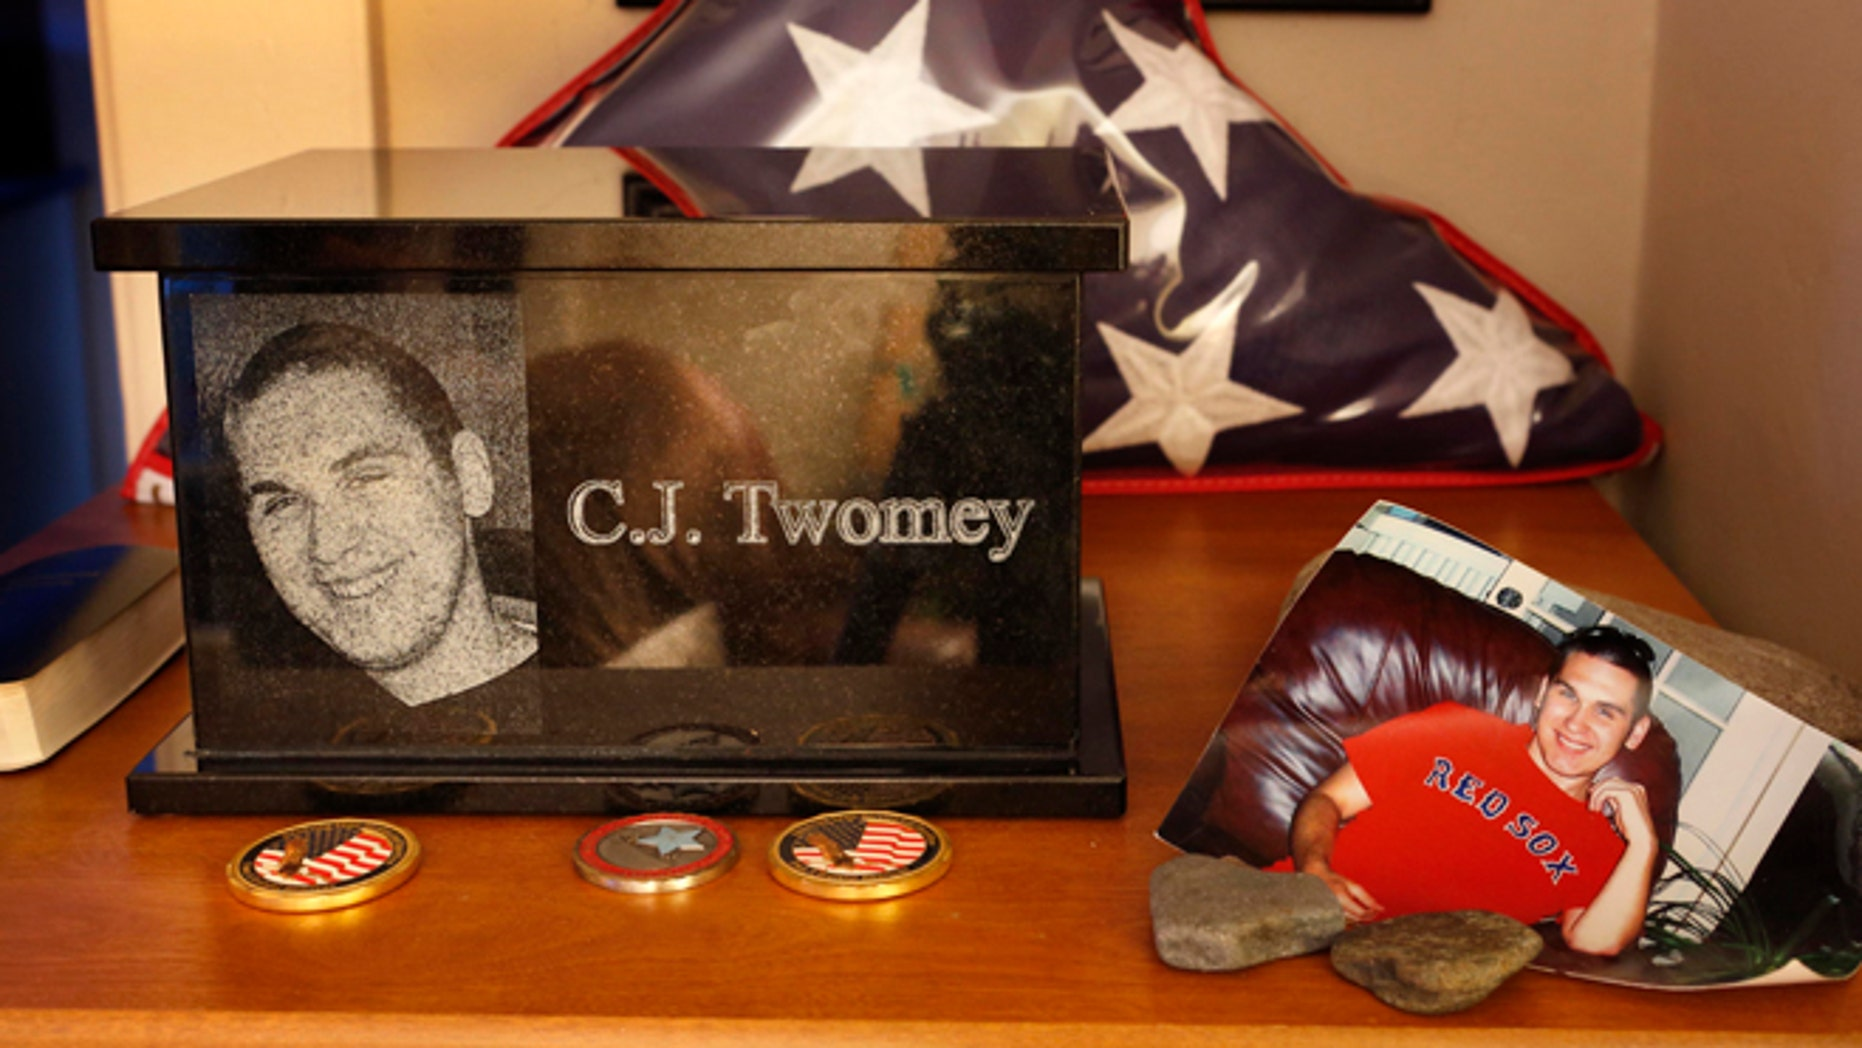 This Dec. 17, 2013, photo shows an urn containing the ashes of C.J. Twomey on a shelf at his parent's home in Auburn, Maine. C.J.'s mother, Hallie Twomey, is asking people to help scatter his ashes throughout the world so he can become part of the world he never got to see.